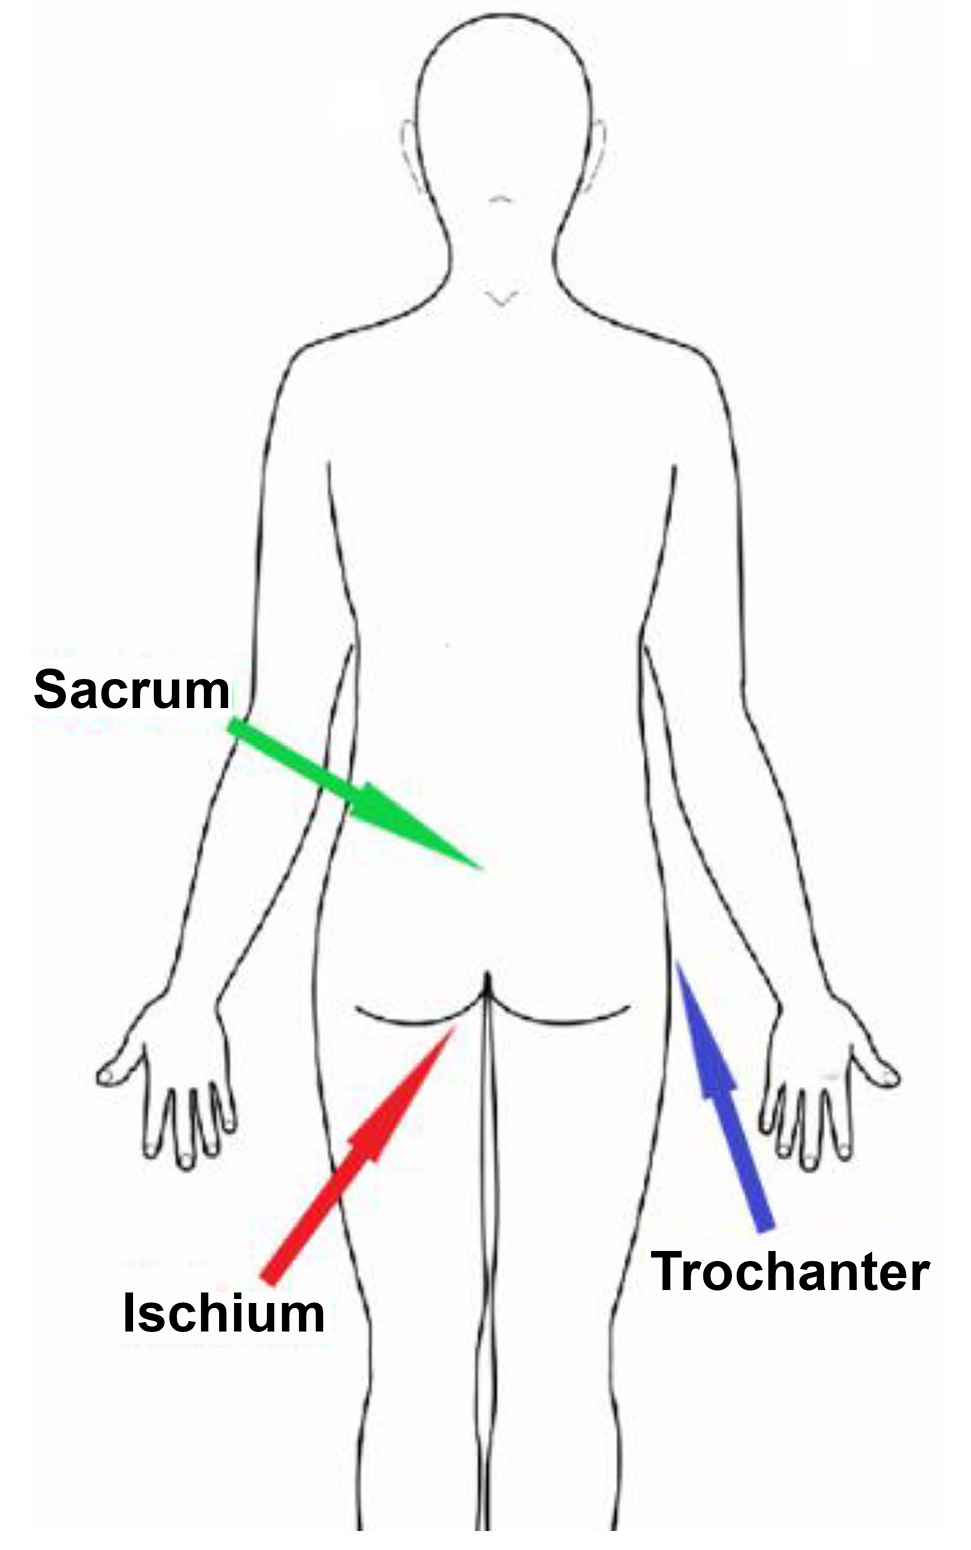 A diagram shows the location of the ischium, sacrum, and trochanter bones on the body.